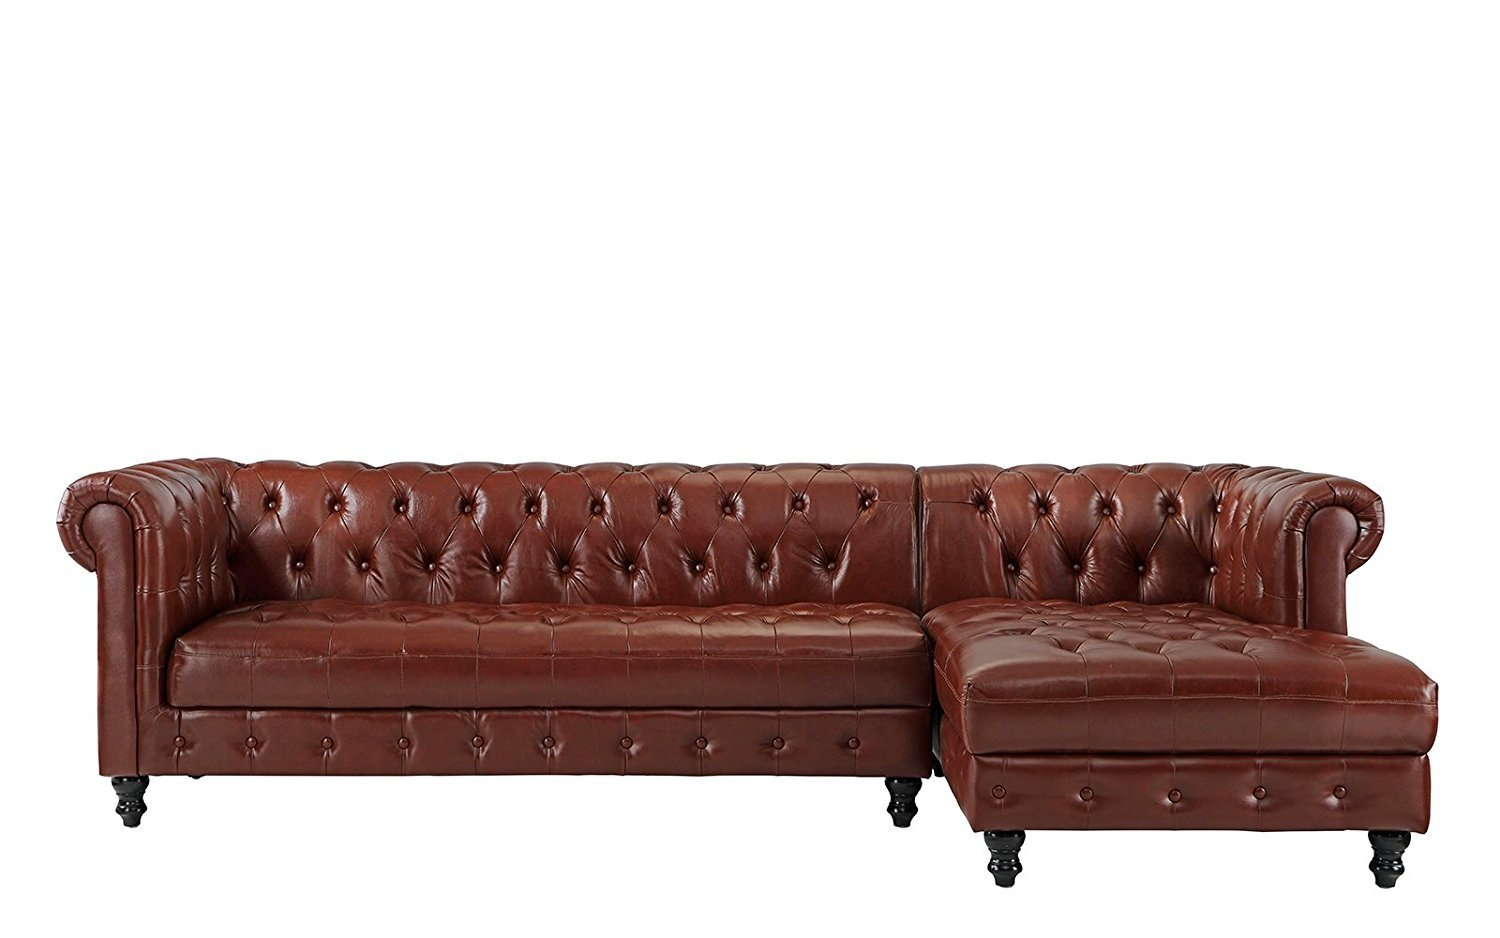 Classic Real Tufted Leather Chesterfield L Shape Sectional Sofa With Wide Chaise Light Brown Walmart Com Walmart Com